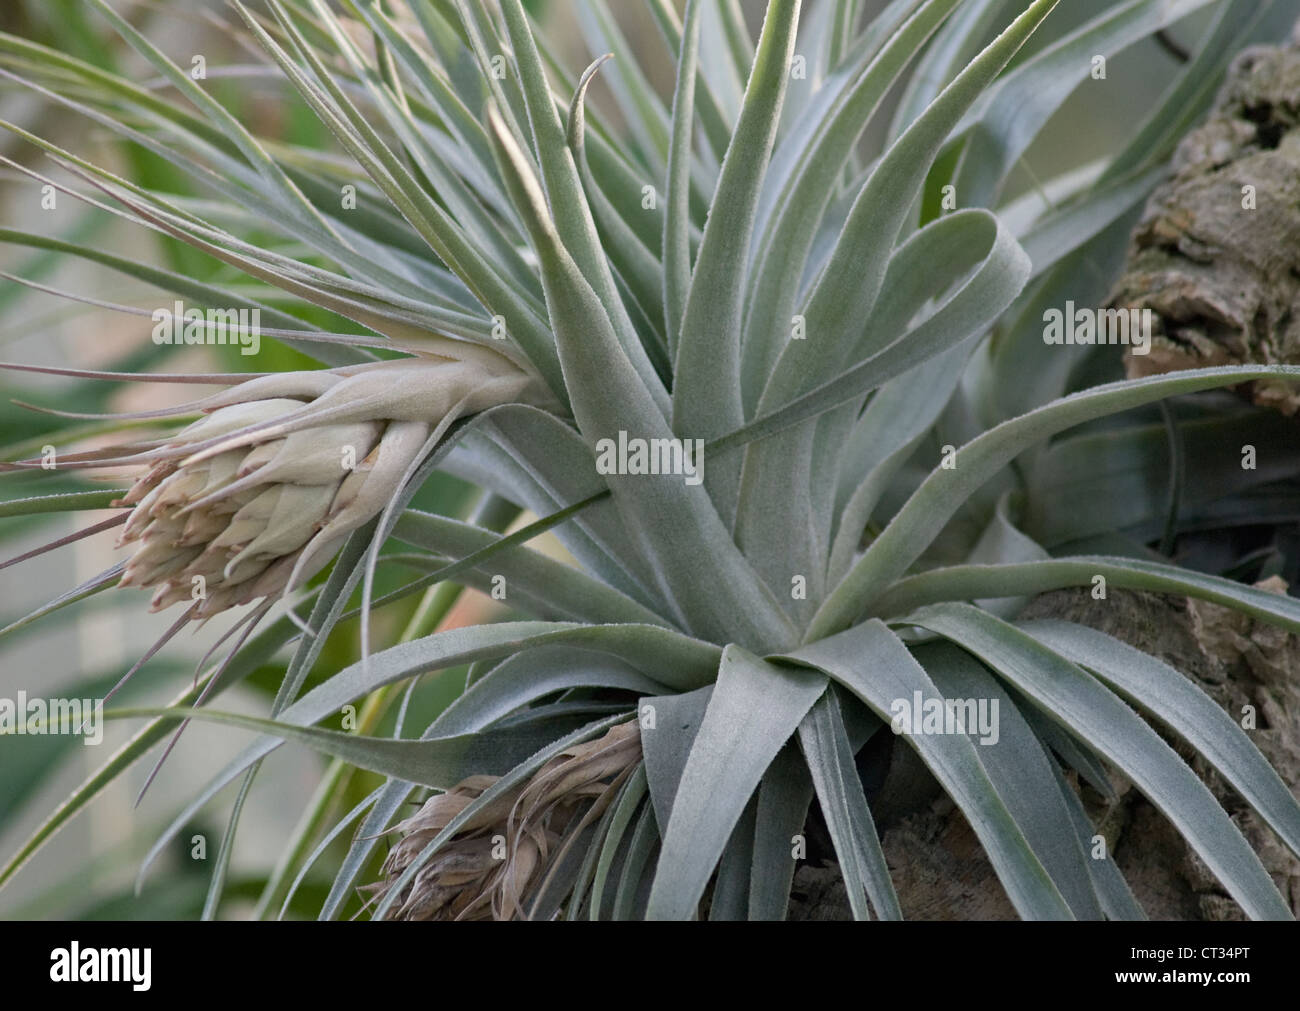 Tillandsia, Air plant - Stock Image